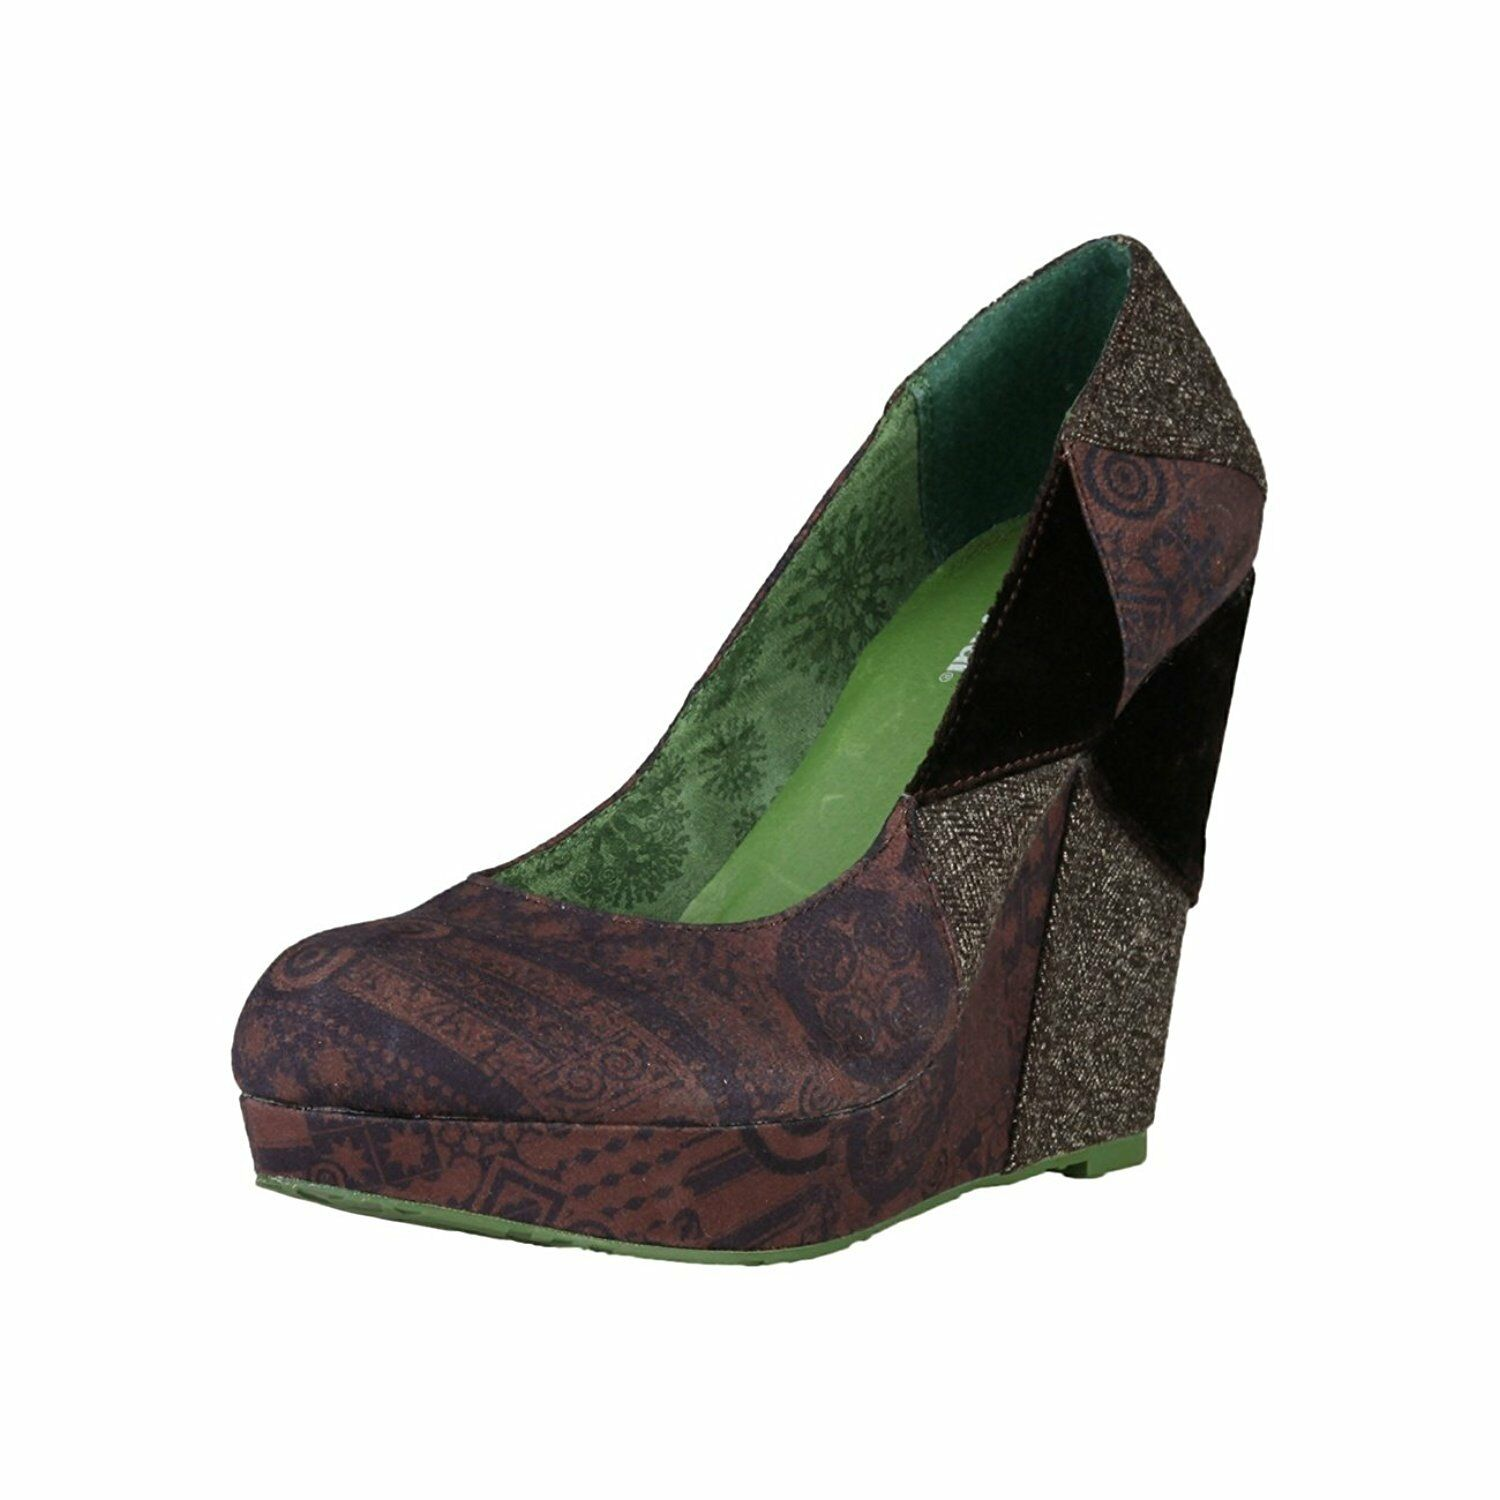 Desigual Rambo LADESS skor PUMPS WEDGE PUMPS WEDGES EU 38 UK 5 Multi -Färgade